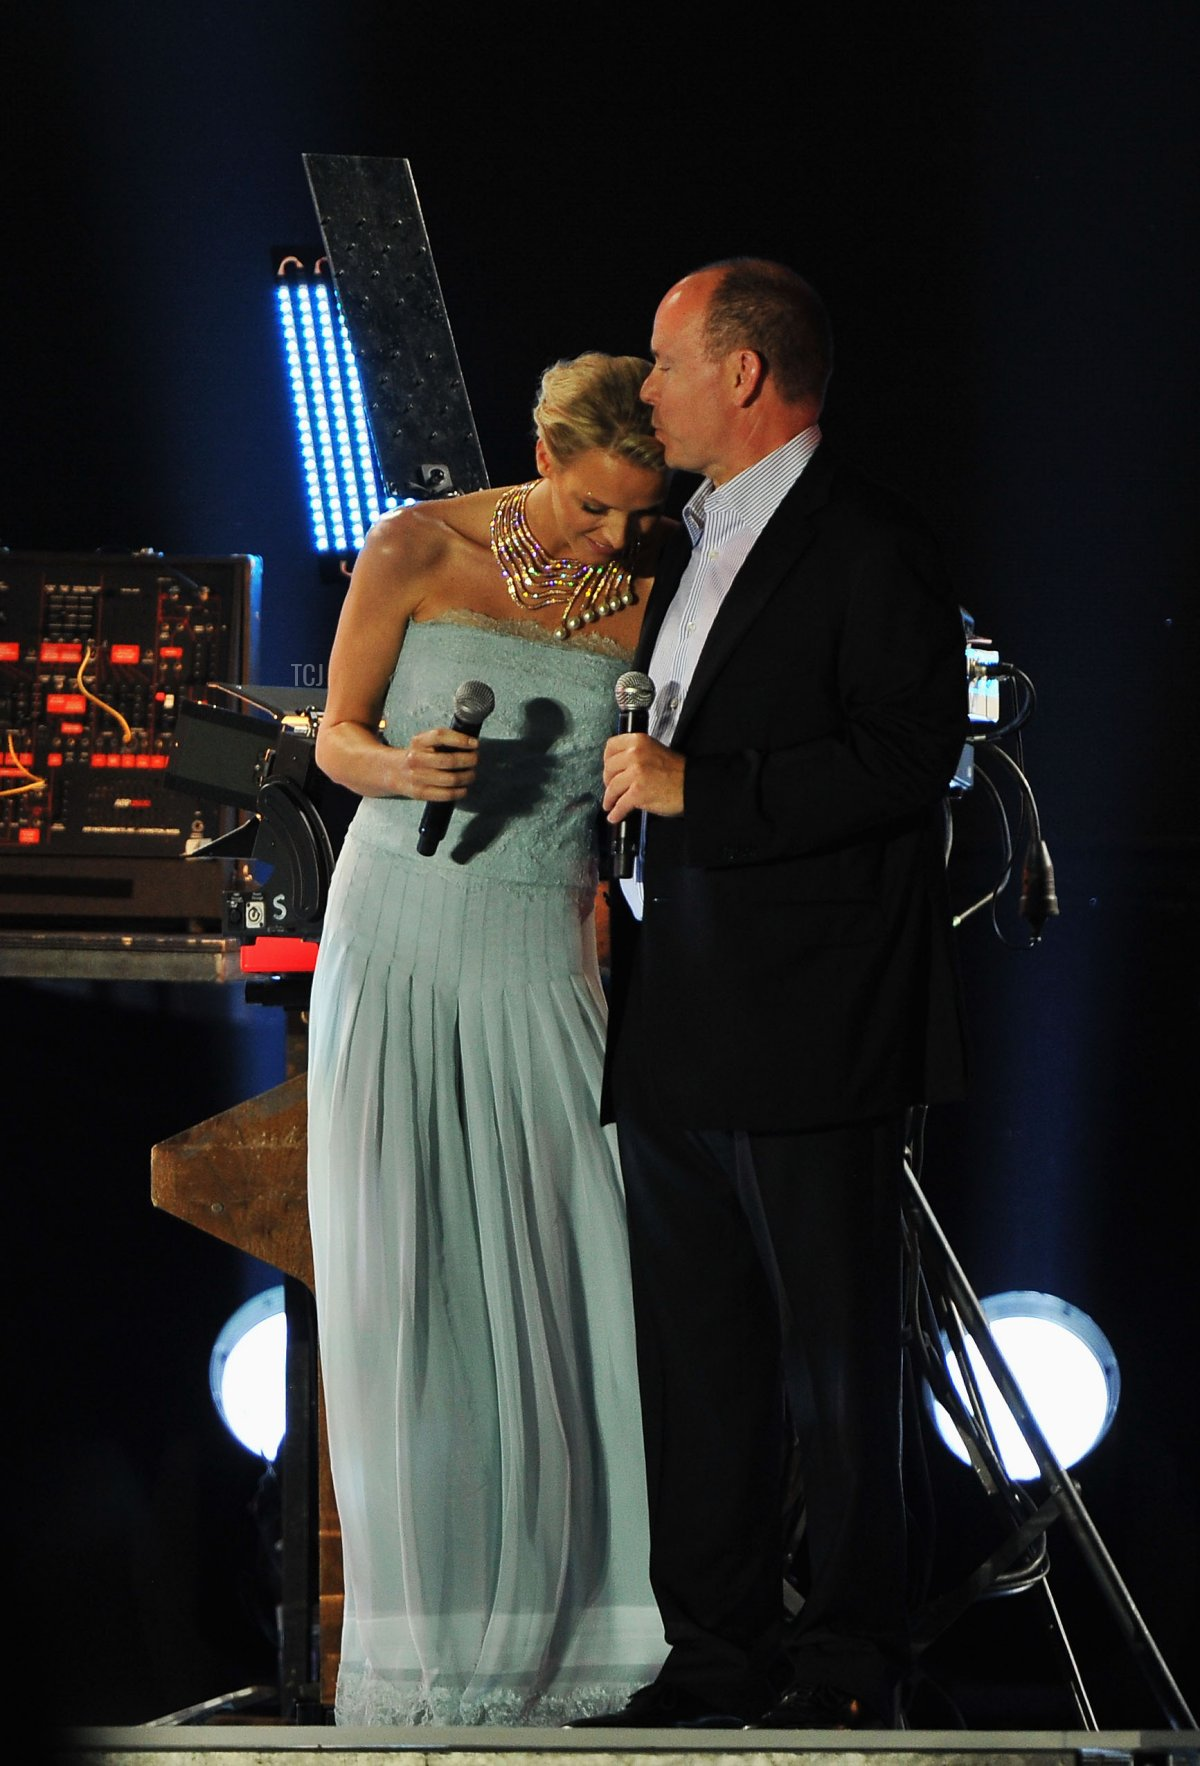 Princess Charlene of Monaco and Prince Albert II of Monaco appear onstage during the Jean Michel Jarre concert celebrating the Royal Wedding of Prince Albert II of Monaco to Princess Charlene of Monaco at the Port of Monaco on July 1, 2011 in Monaco